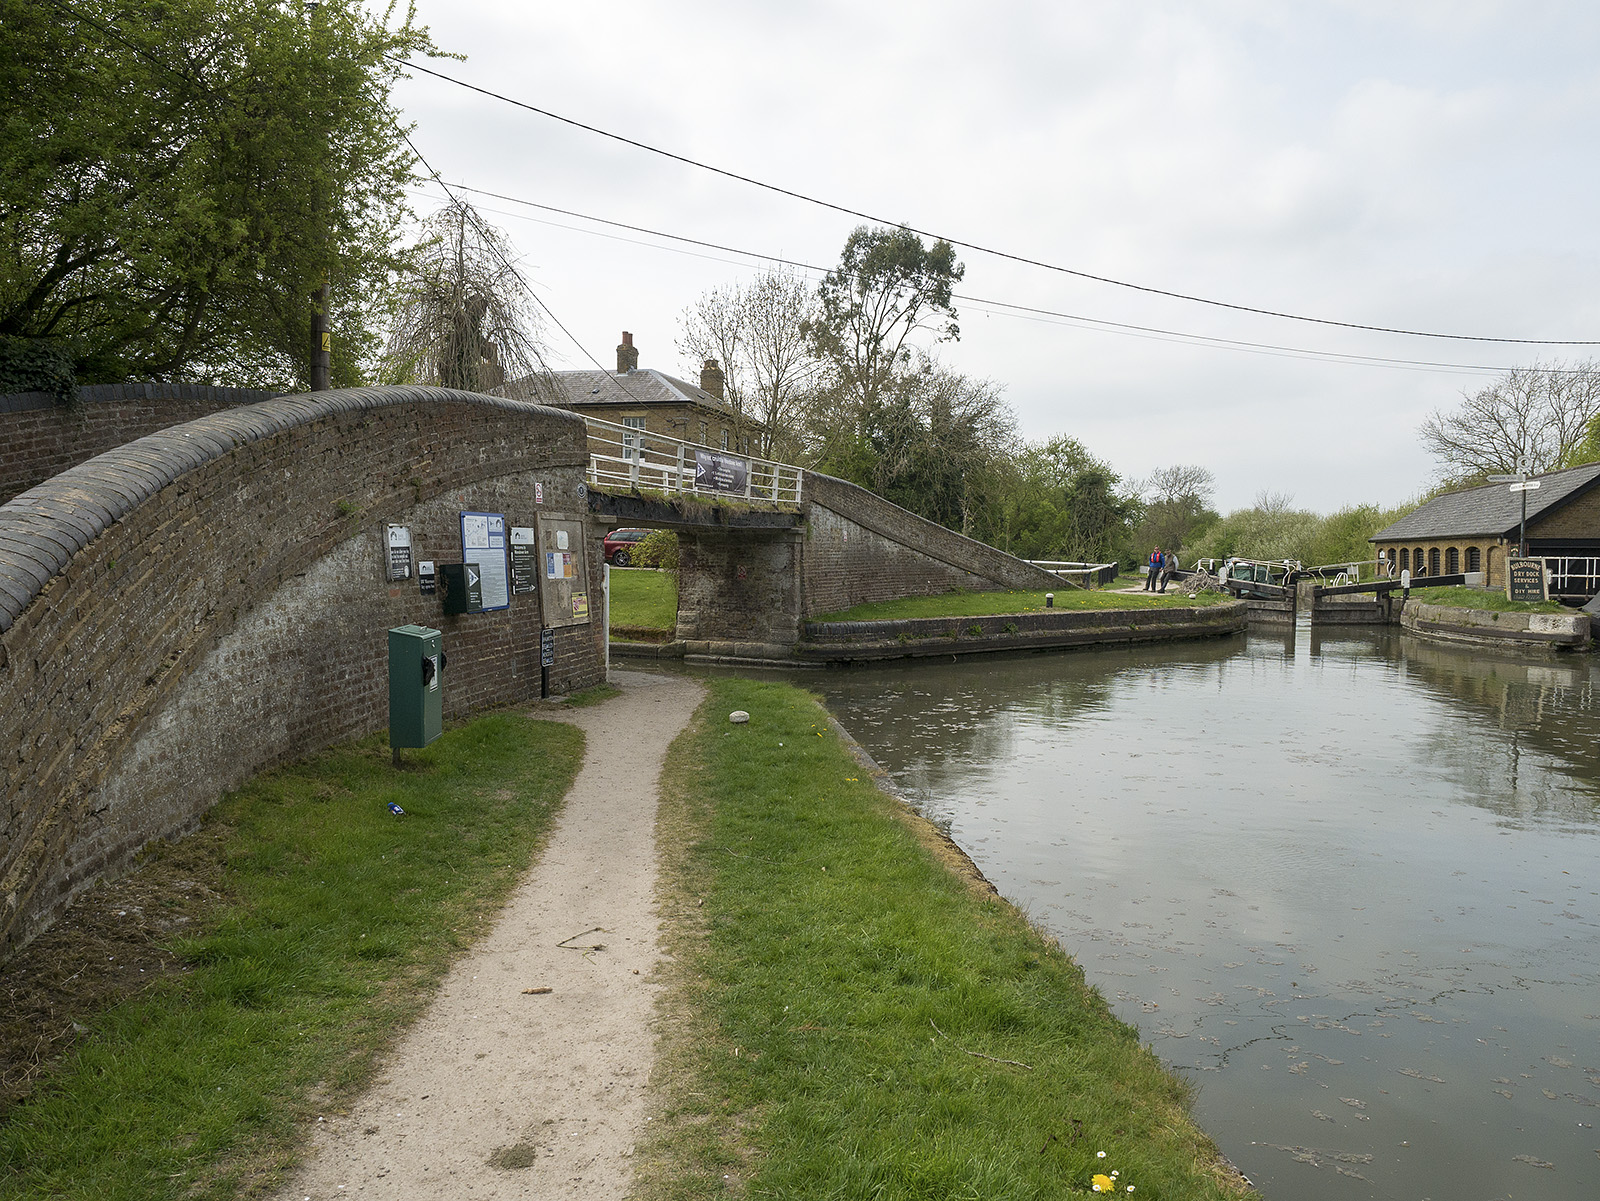 Start of the Wendover Arm at Bulbourne junction